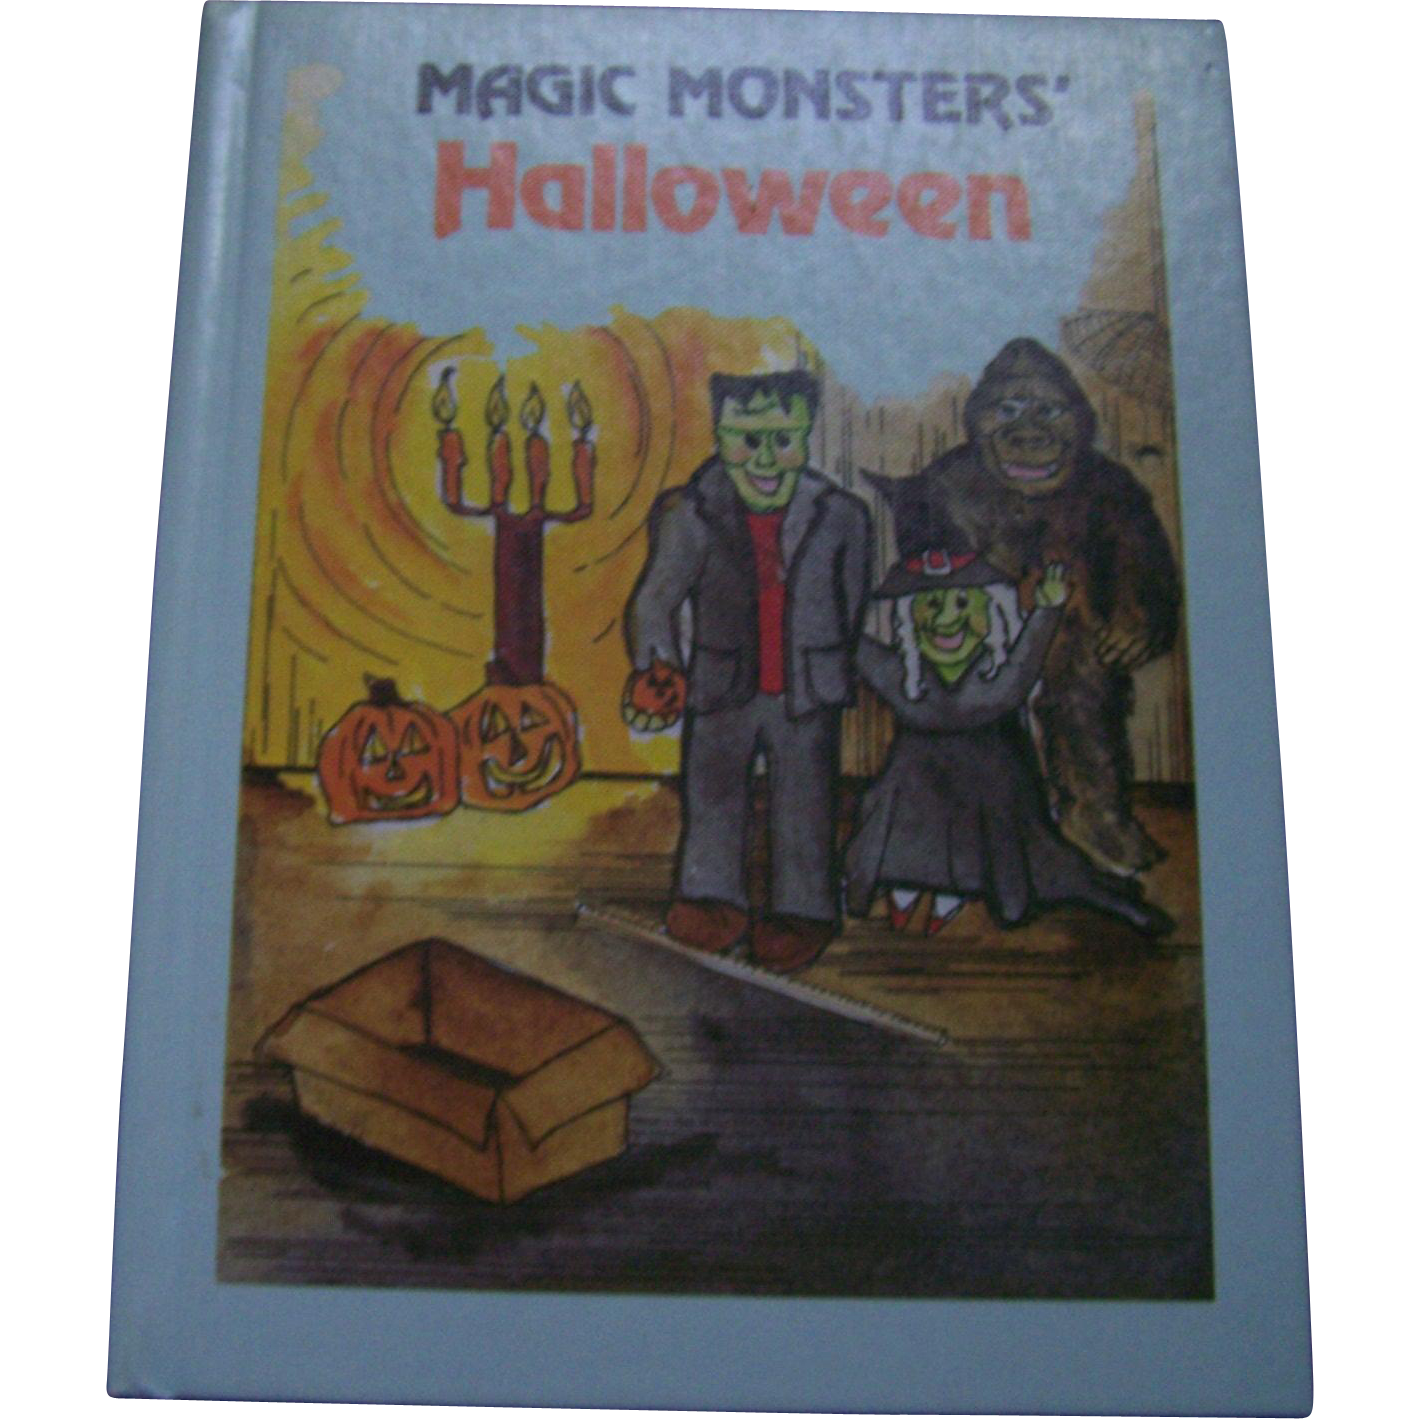 Magic Monsters Halloween Hard Cover Illustrated Children's Book  by Sylvia Root Tester